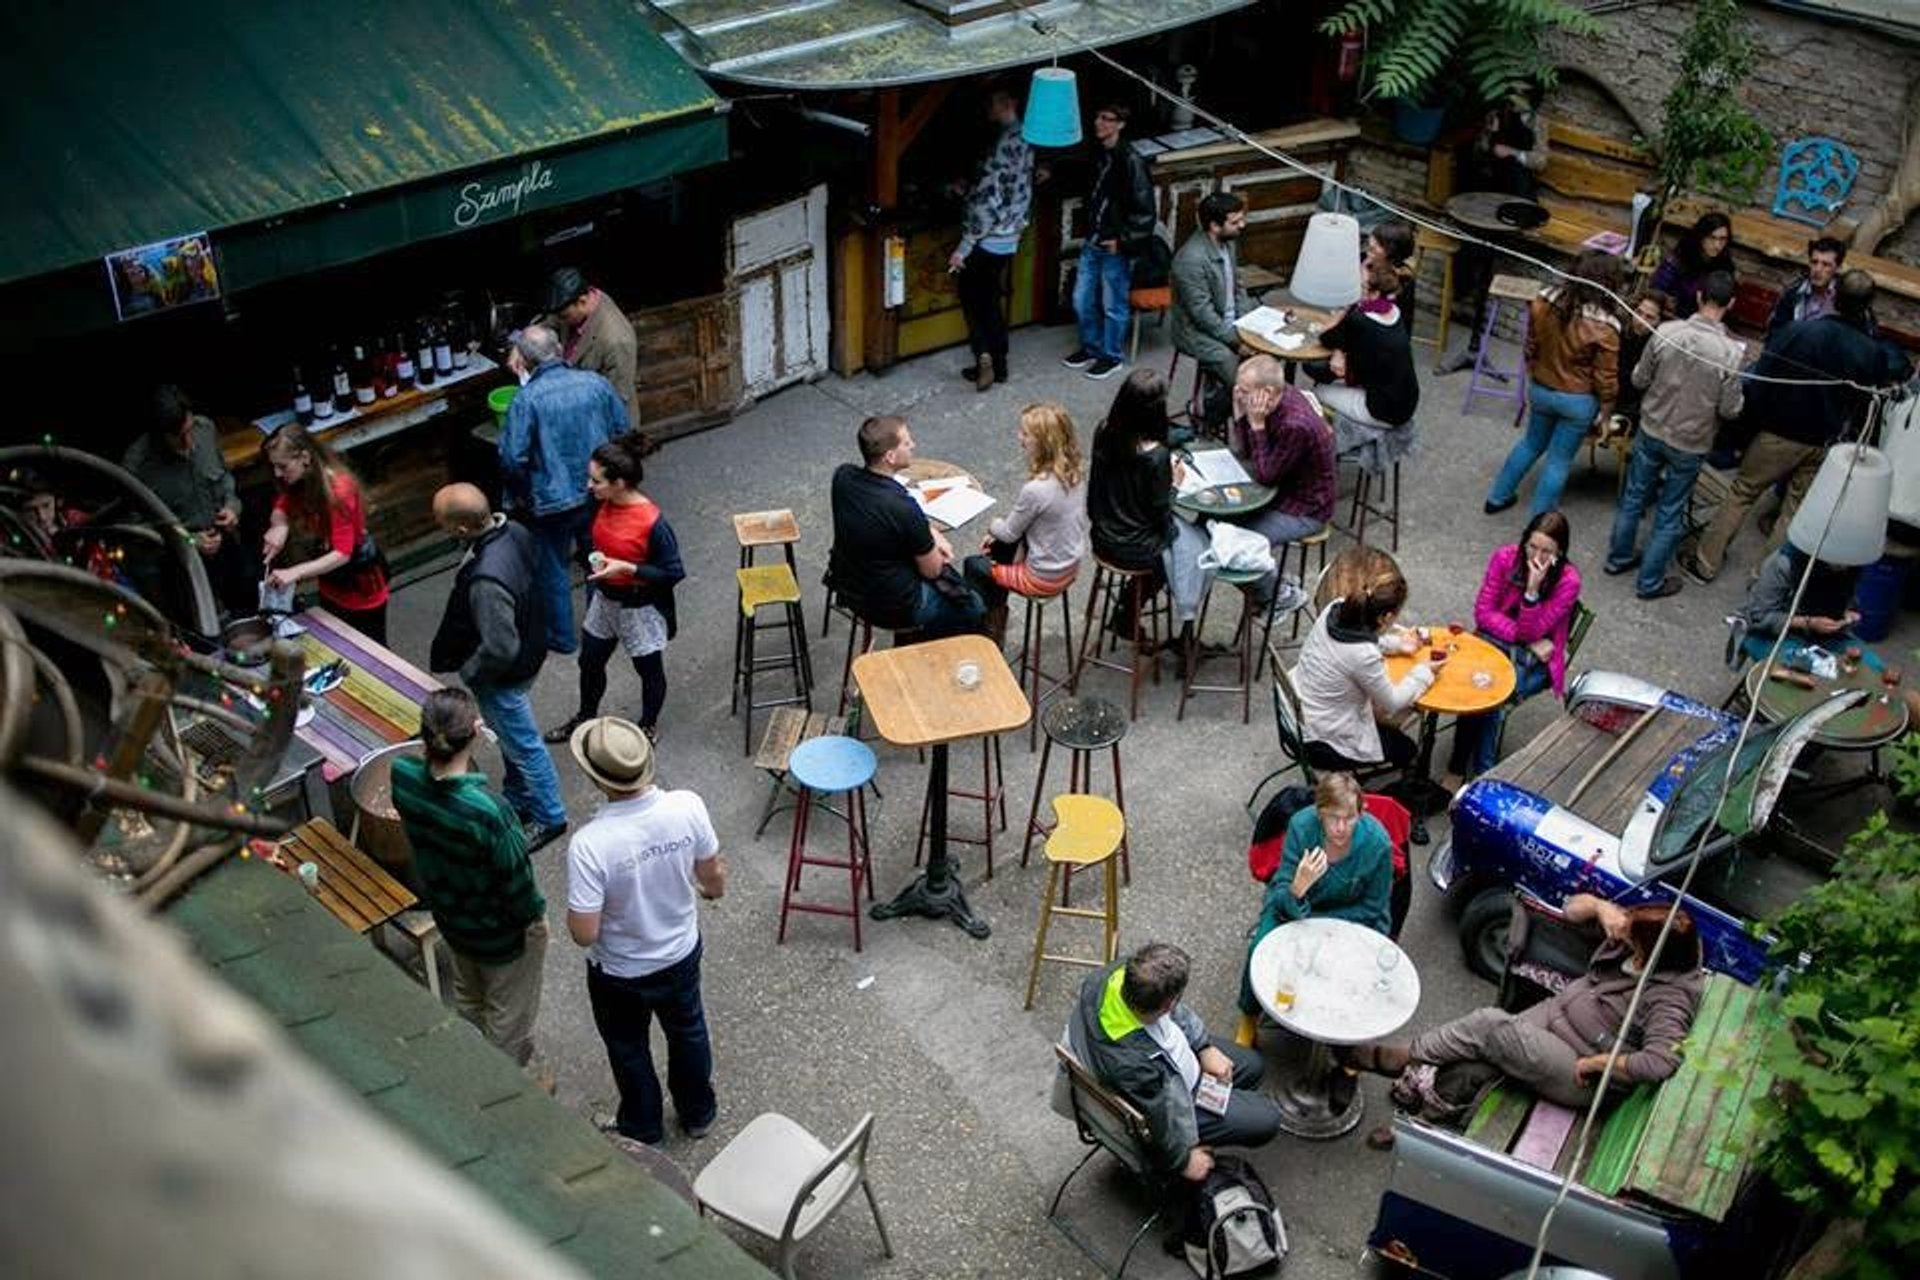 Szimpla kert courtyard from above 2019